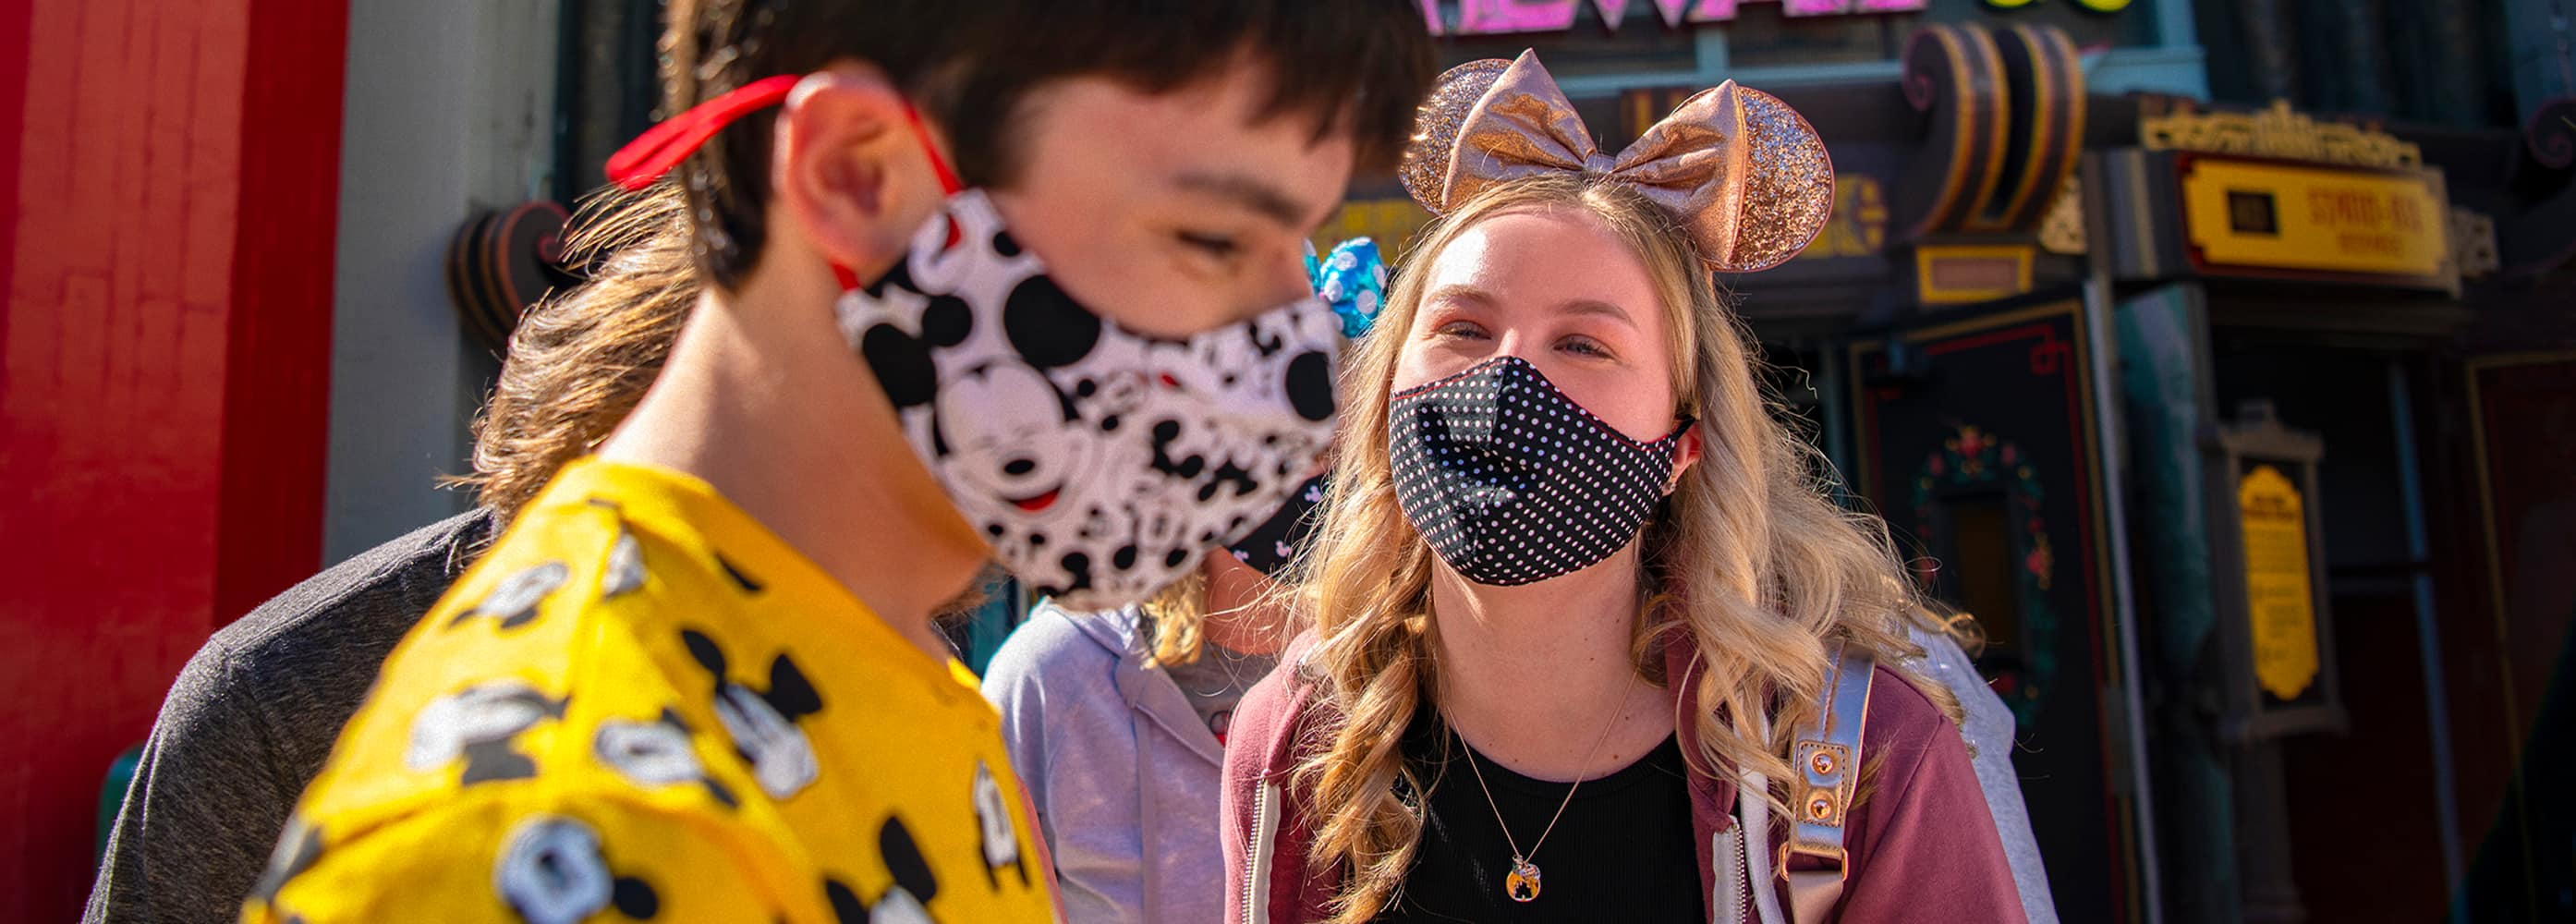 A teen boy wearing a Mickey Mouse mask and shirt talks with a teen girl wearing a mask and Minnie Mouse ear headband with a bow in front of Mickey and Minnie's Runaway Railway at Disney's Hollywood Studios